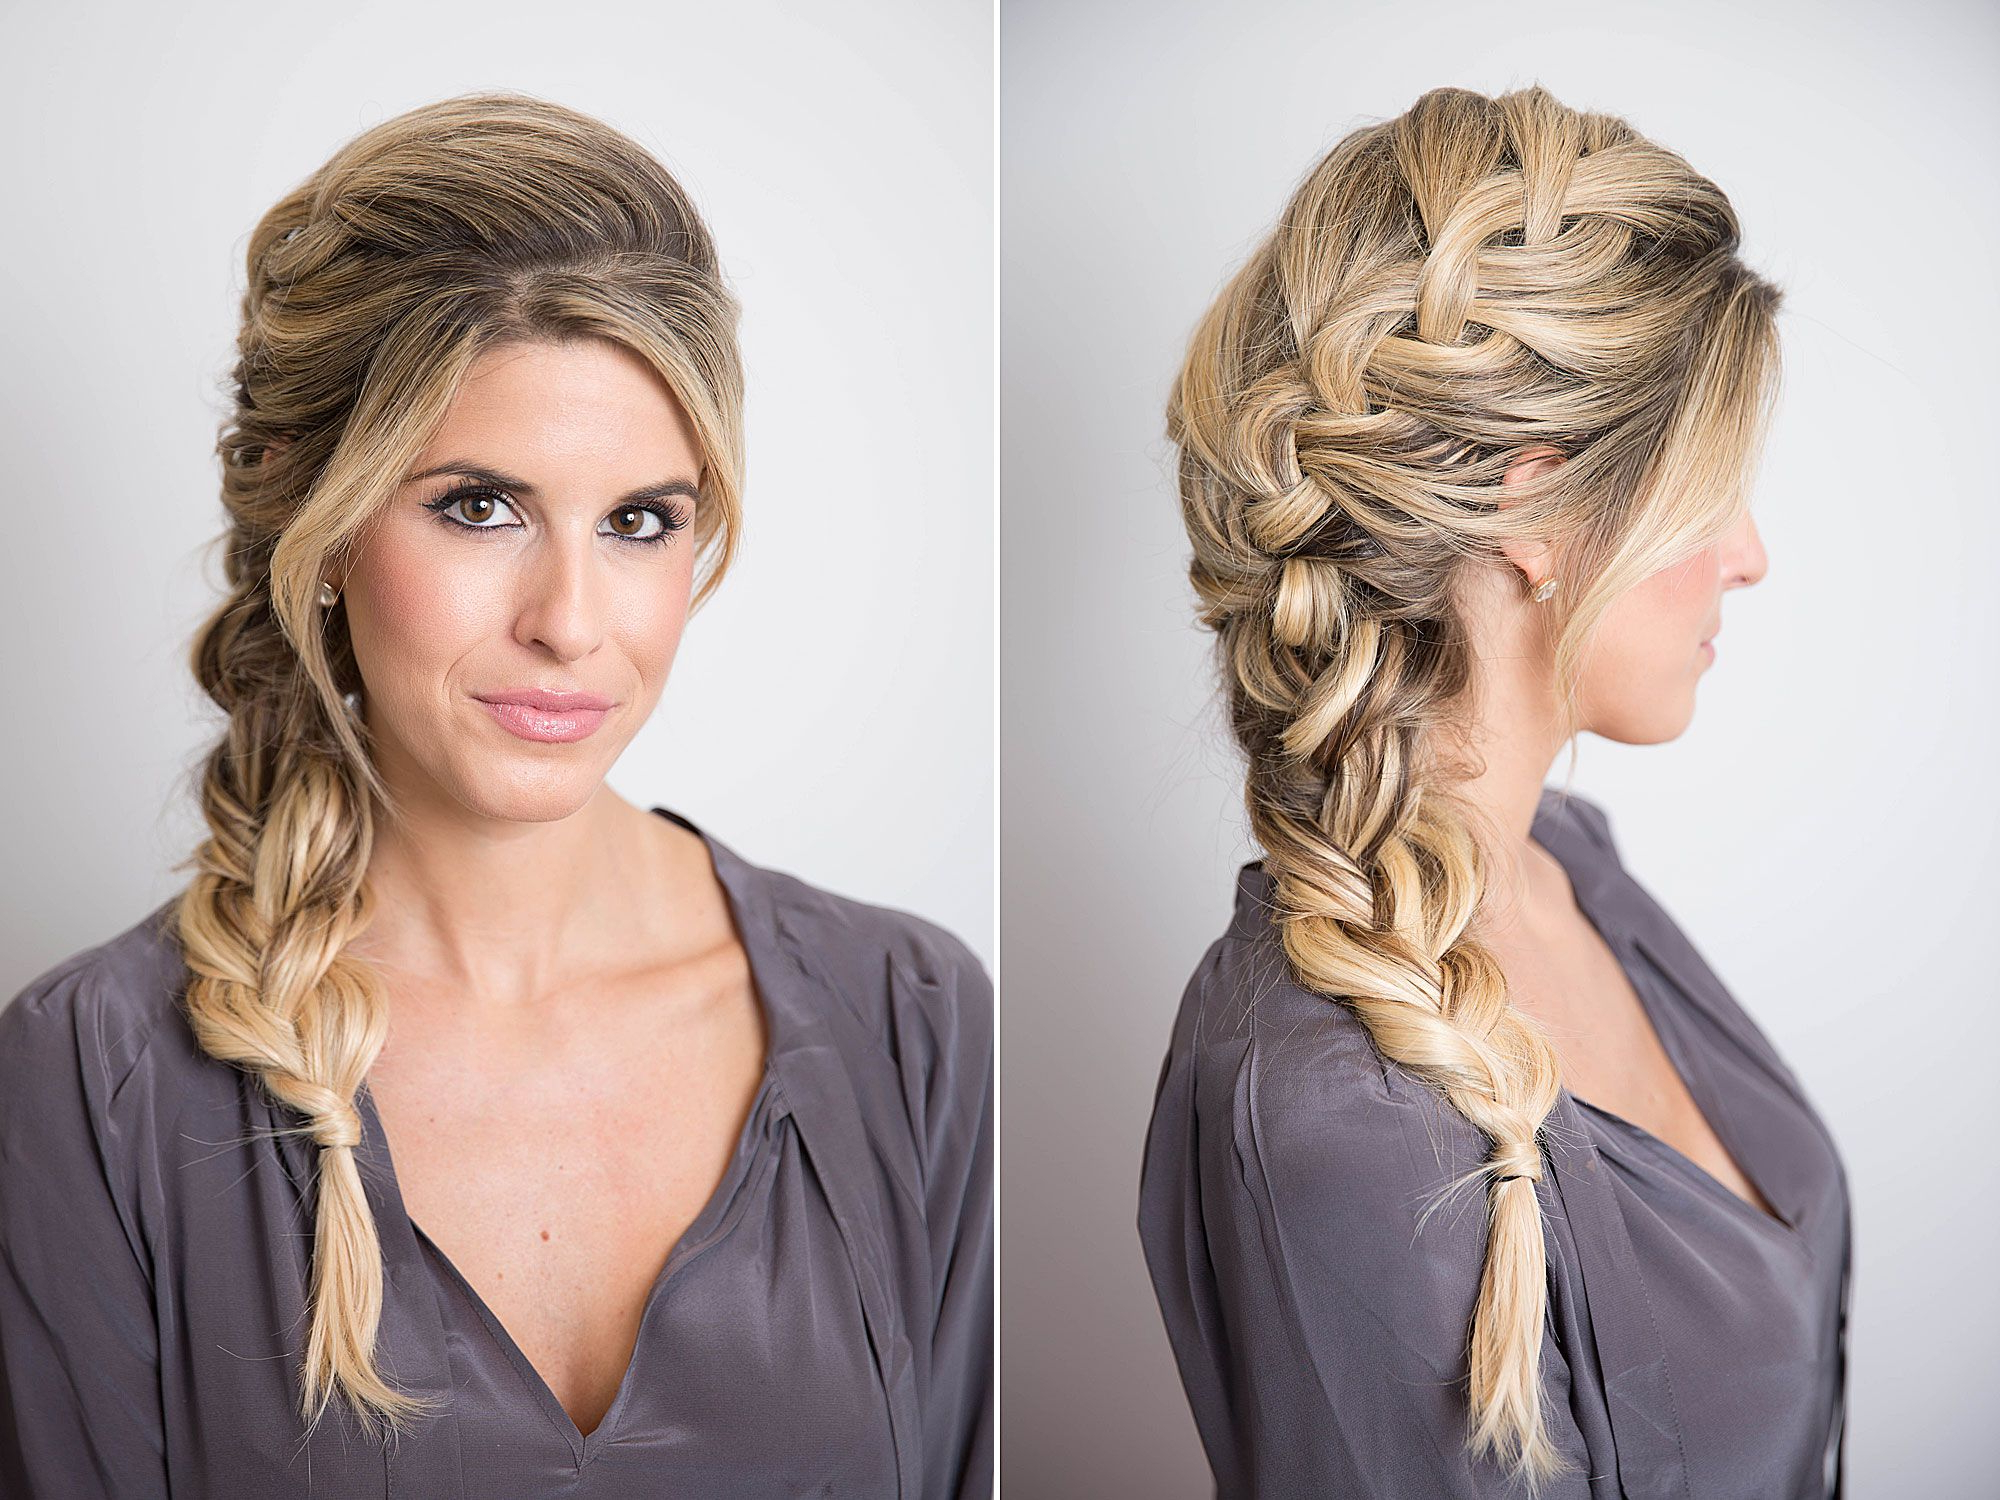 17 Braided Hairstyles With Gifs – How To Do Every Type Of Braid With Well Known Messy Fishtail Hairstyles For Oblong Faces (View 4 of 20)